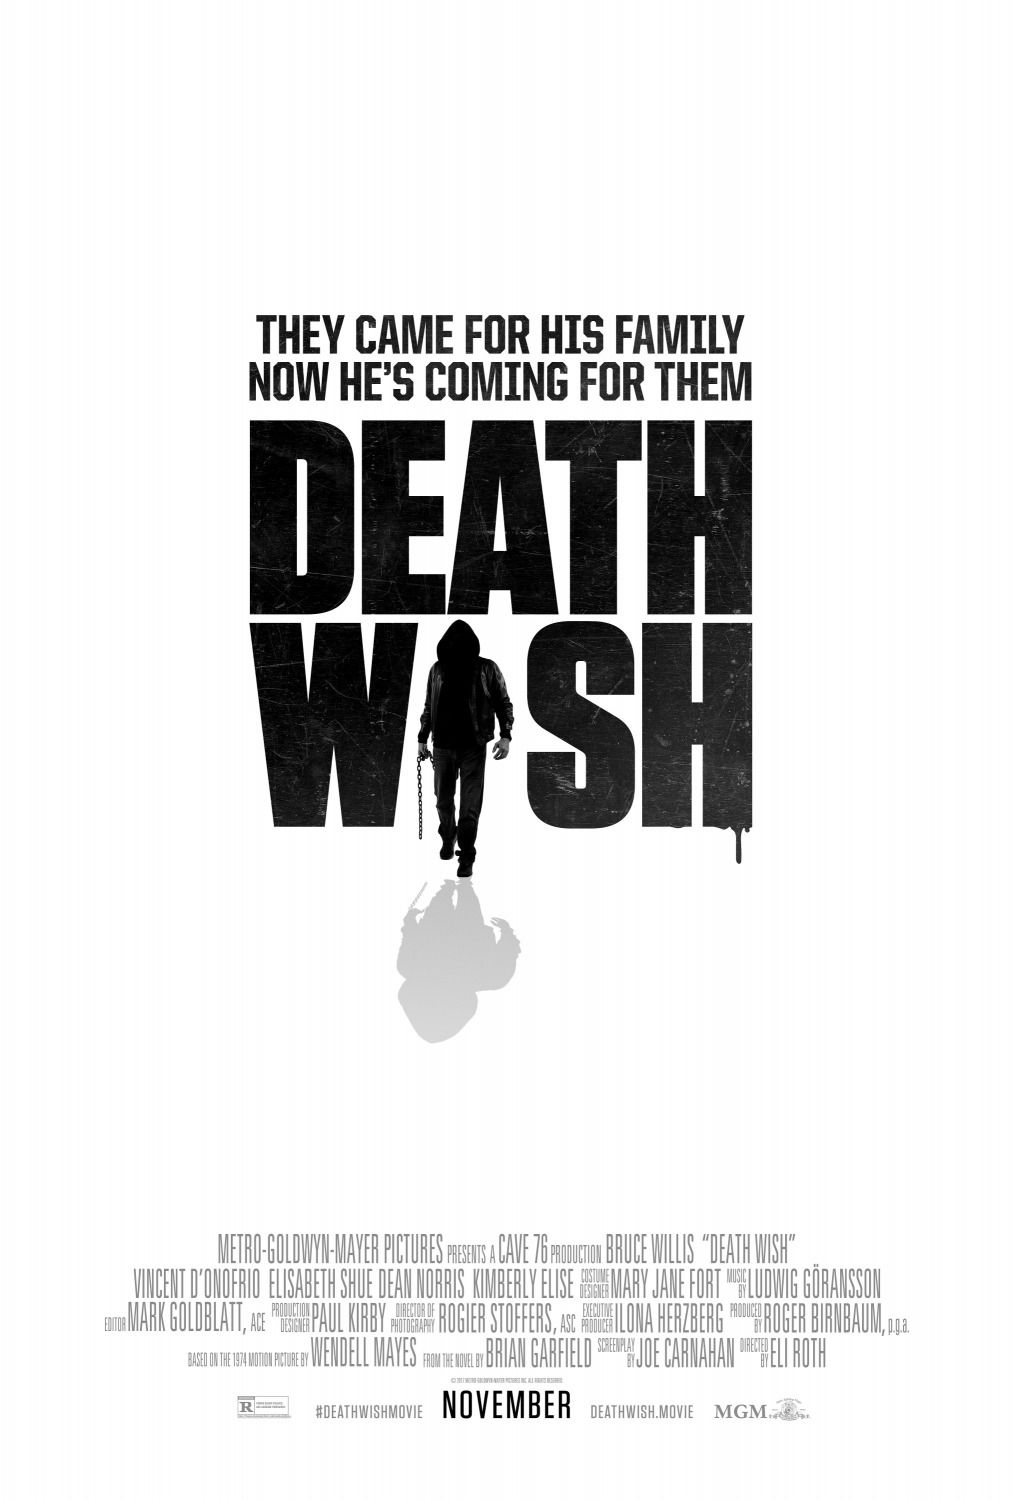 Death Wish - they came for his family, now he's coming for them Death Wish - Cave76 production - Bruce Willis - Vincent D'Onofrio - Elisabeth Shue - Dean Norris - Kimberly Elise - thriller film poster